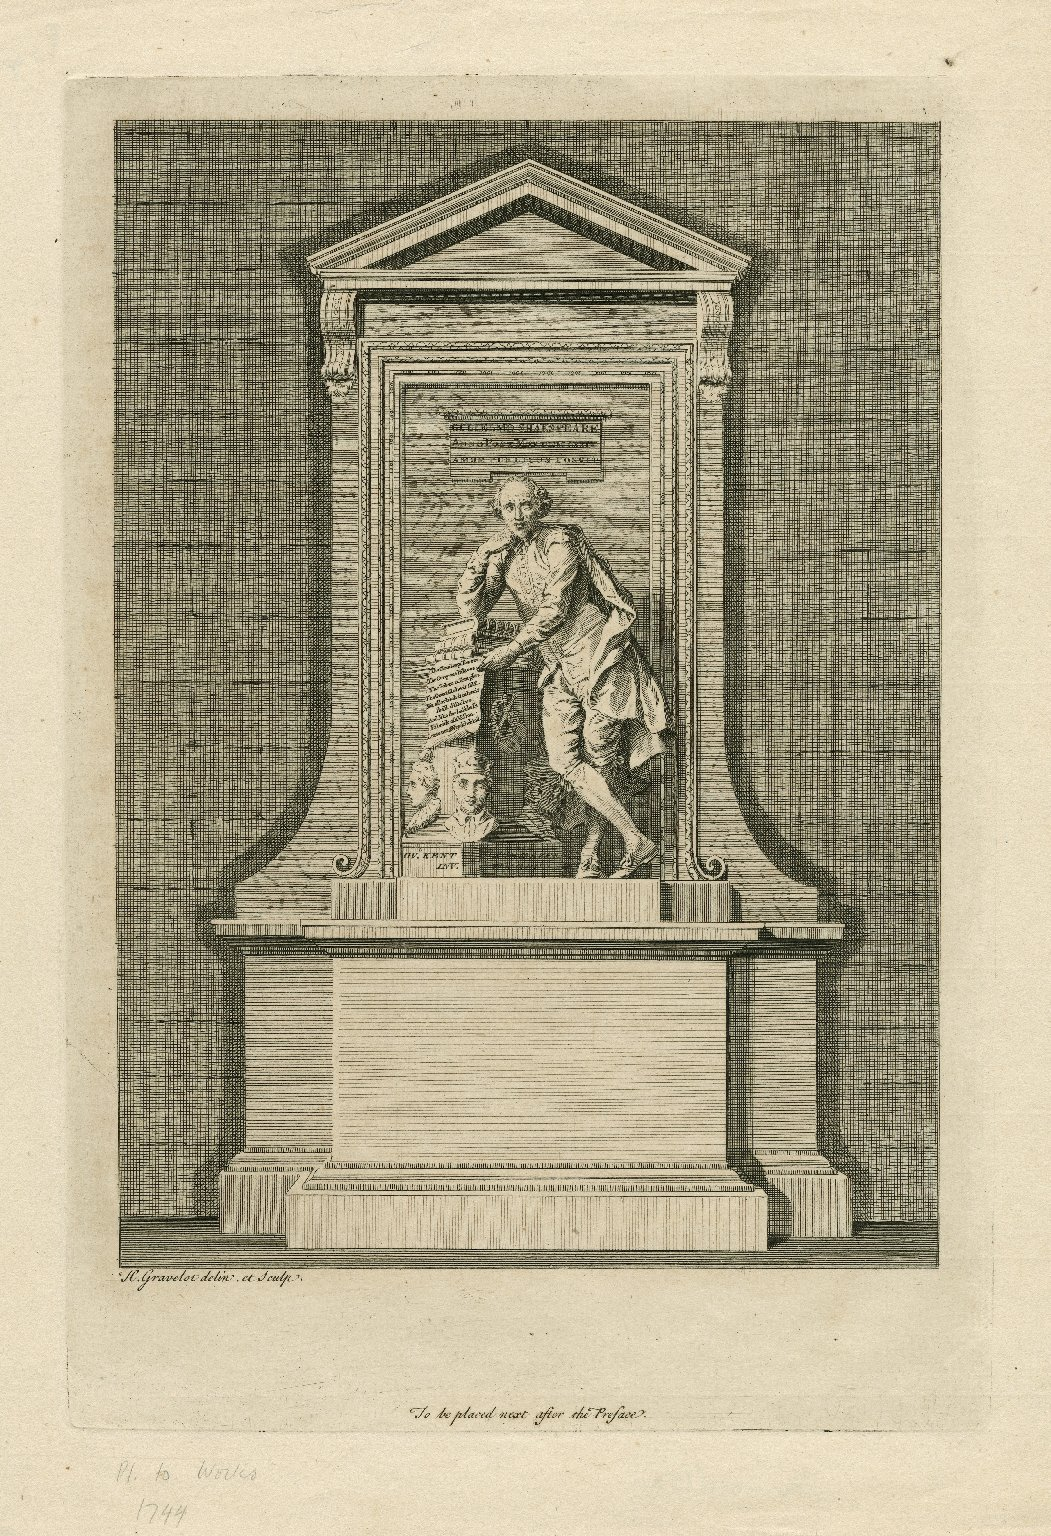 Gulielmo Shakspeare ... [his monument in Westminster Abbey] [graphic] / H. Gravelot, delin. et. sculp.